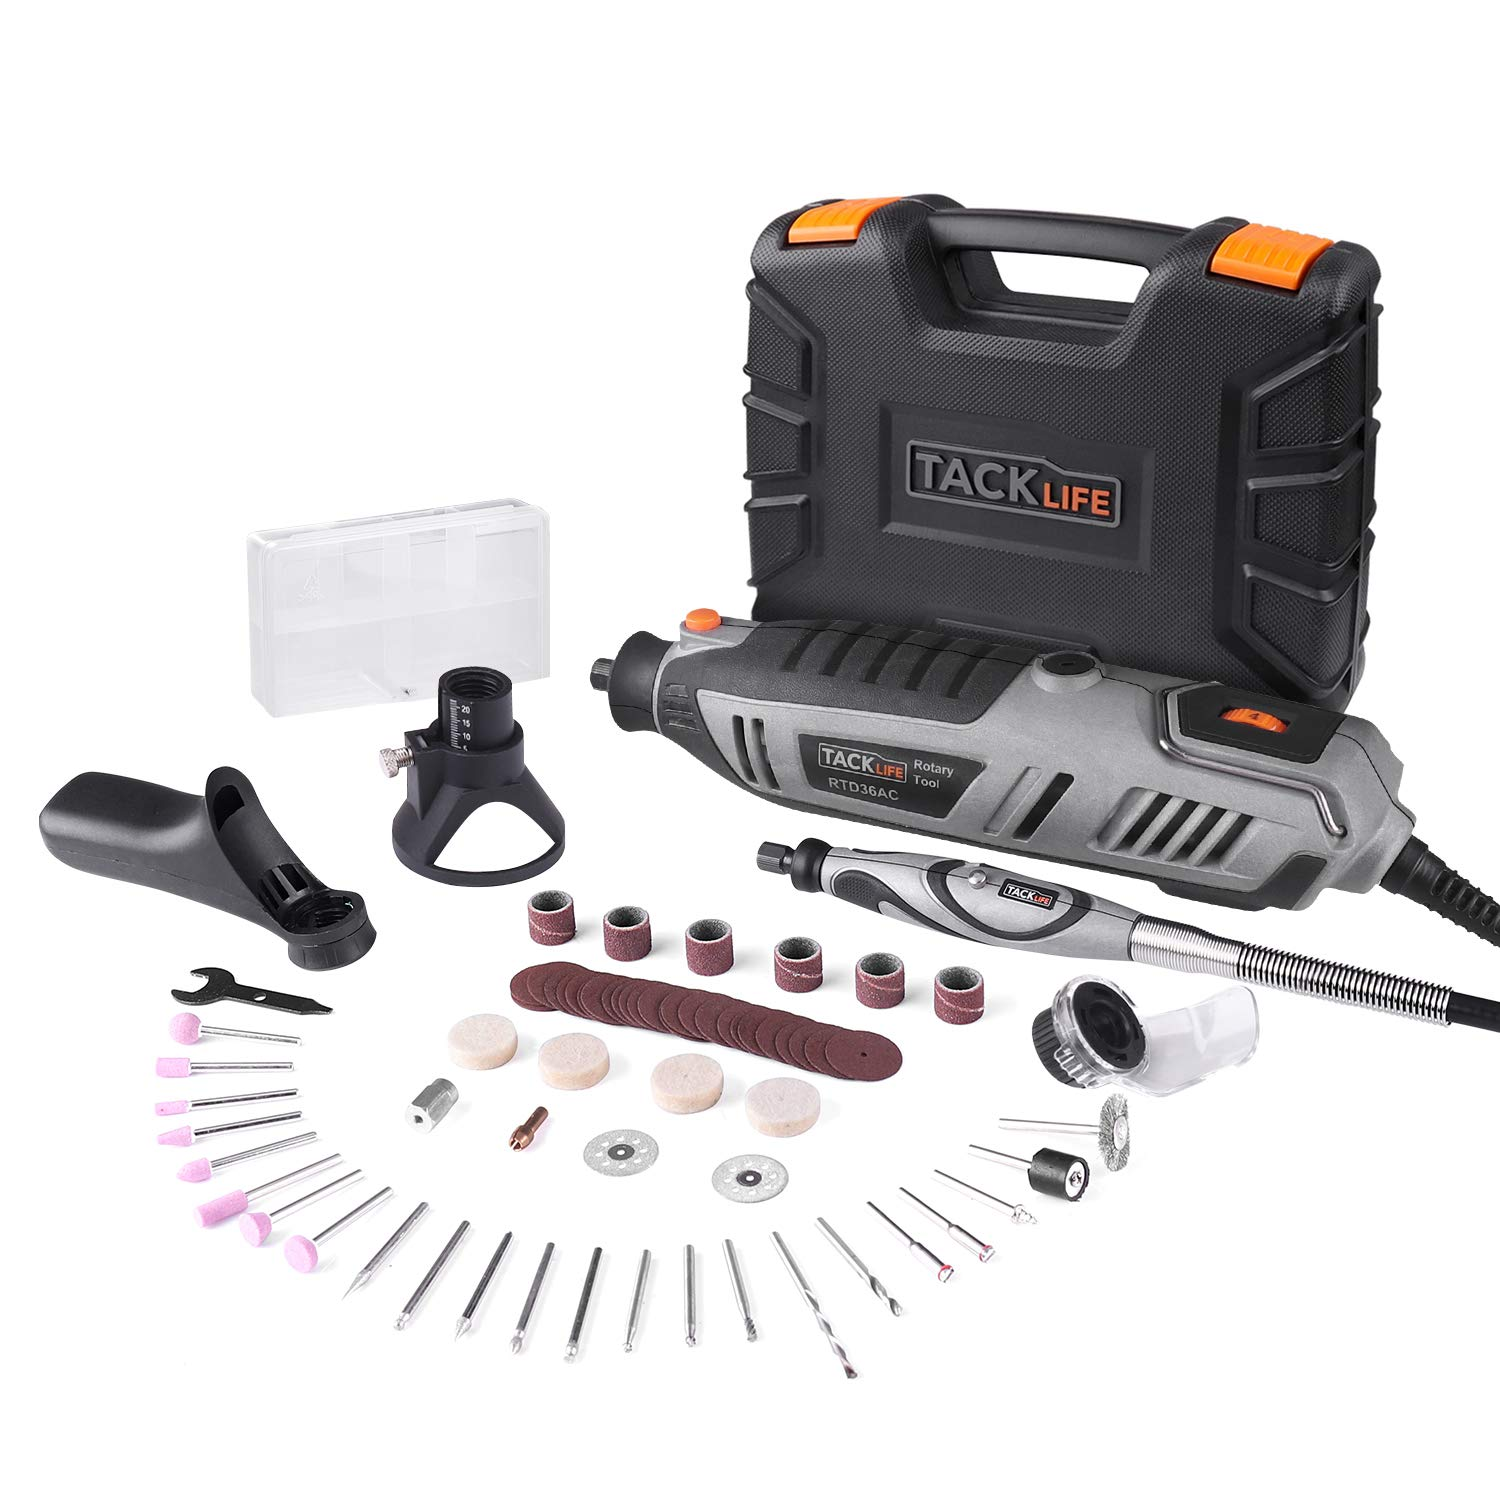 Ideal for DIY Tool Rotation Speed: 10,000-40,000 rm Rotary Tool Tacklife RTD36AC 200 Watt with 63 Work Tools and 4 Handy Accessories